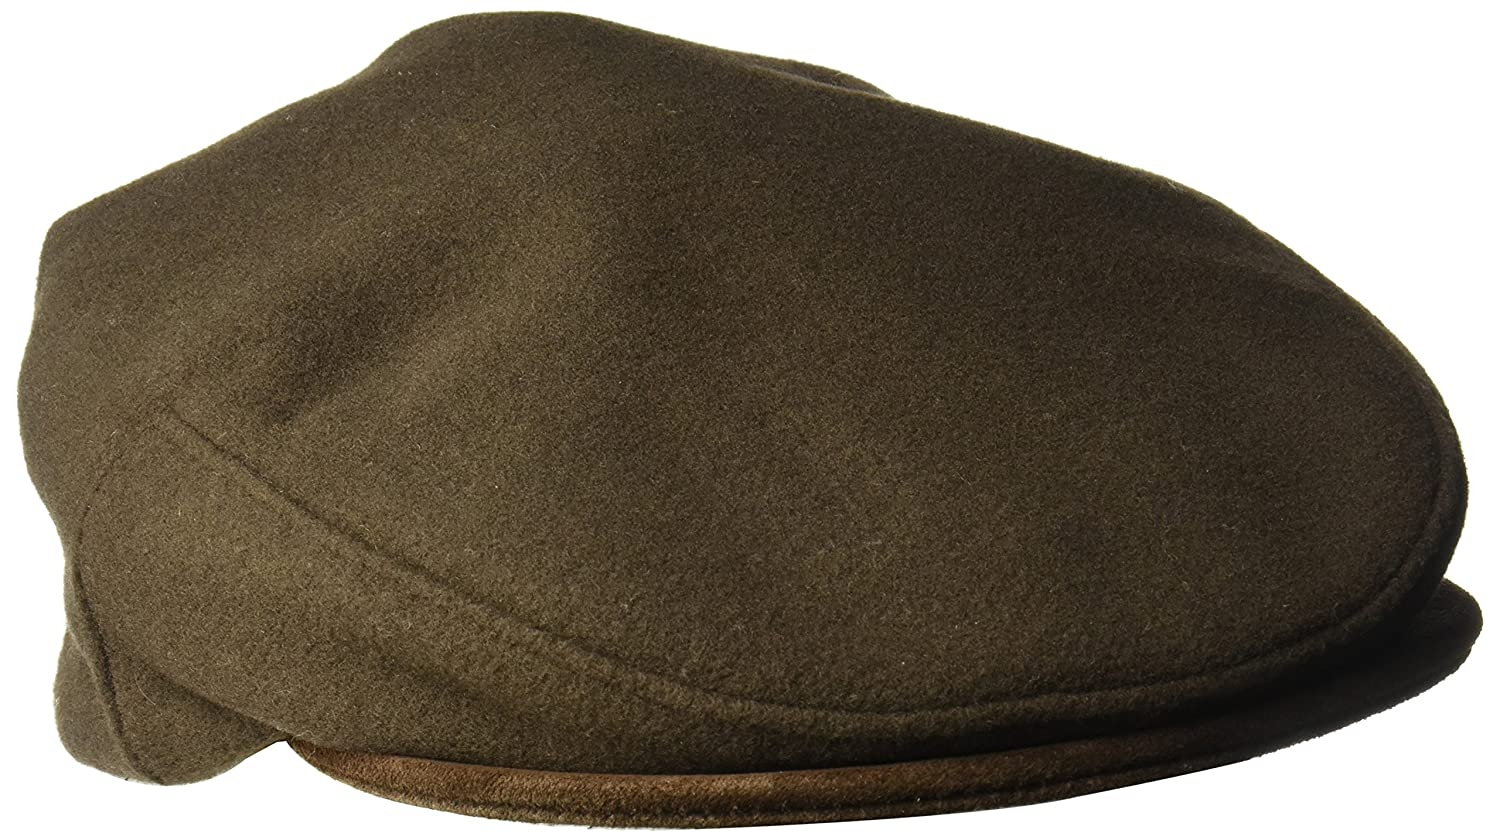 Goorin Bros. Mens Carson Range Wool Ivy Newsboy Hat Goorin Bros Mens 703-0001